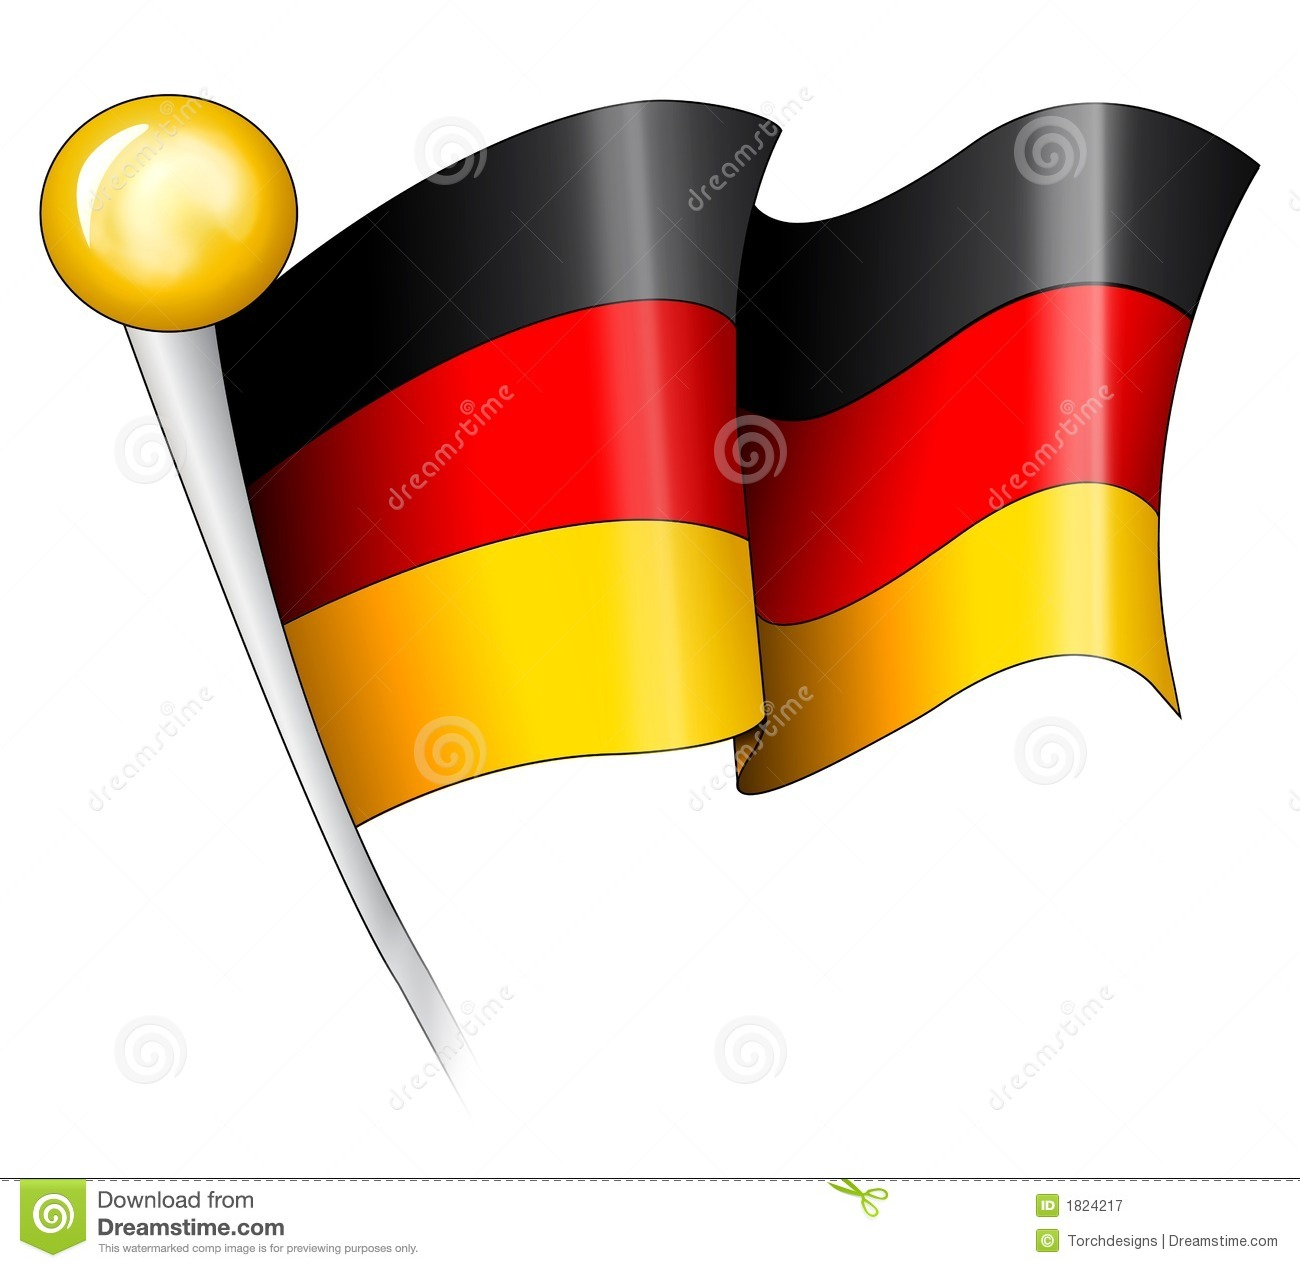 Clipart deutsche flagge. Nationalist stock illustrations german